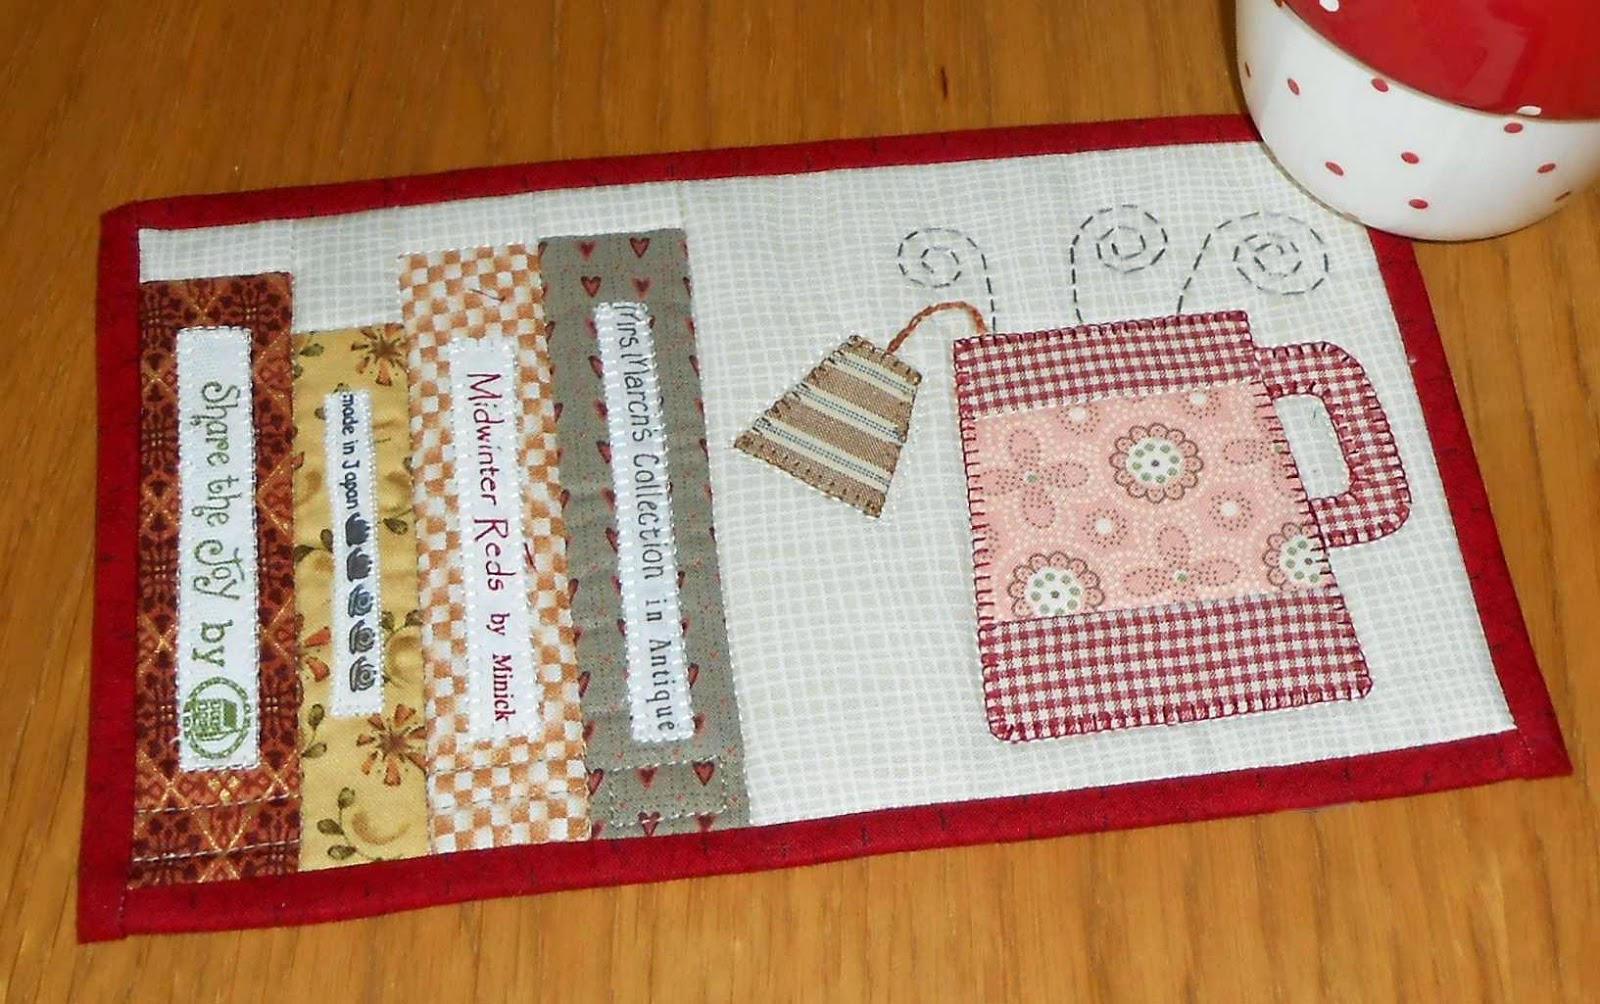 http://www.craftsy.com/pattern/quilting/home-decor/tea-and-books-mug-rug/95381